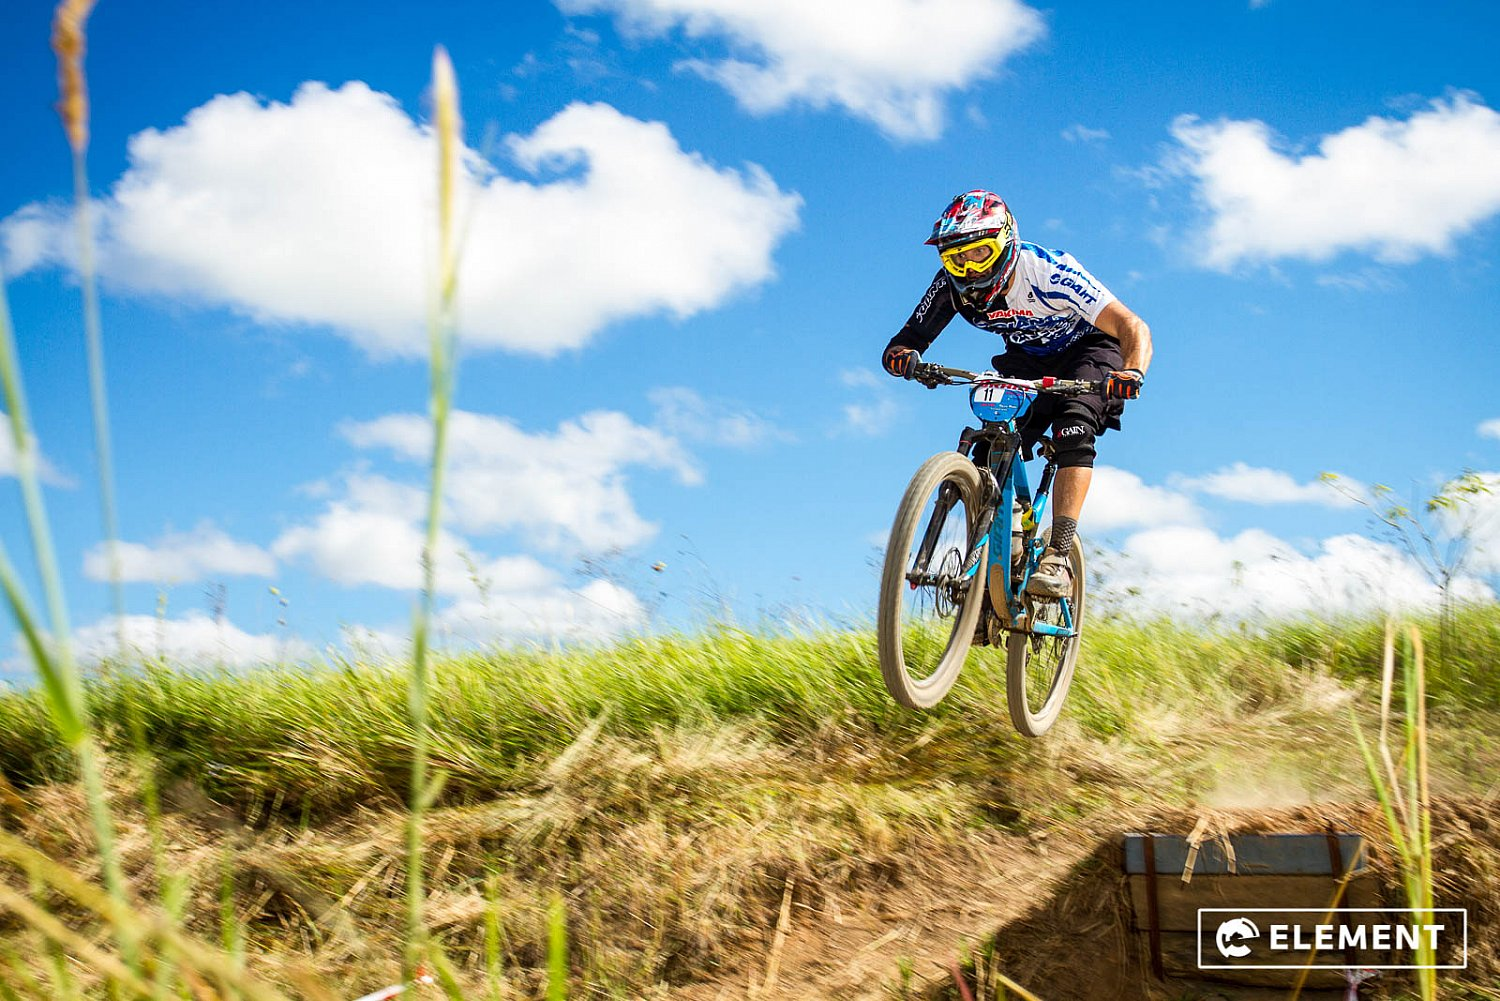 MTB Ride and Shoot Photography Workshop (1st March 2020) | ALW-7860-2_Andrew_Willis_03-04-2016.jpg